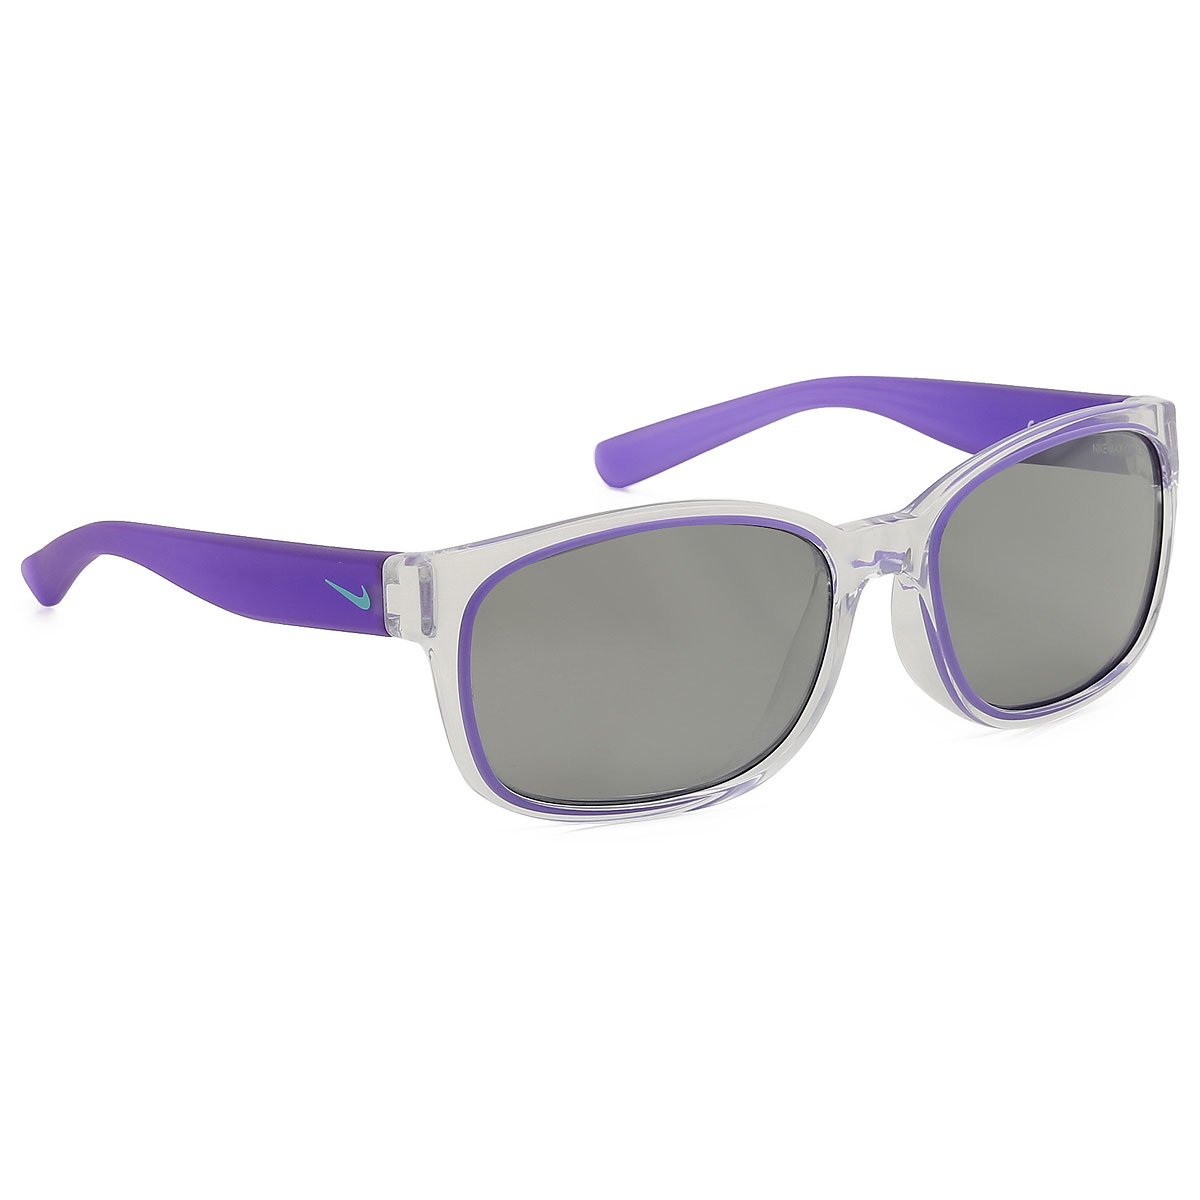 Nike Kids Sunglasses for Girls Lilac Canada - GOOFASH - Womens SUNGLASSES